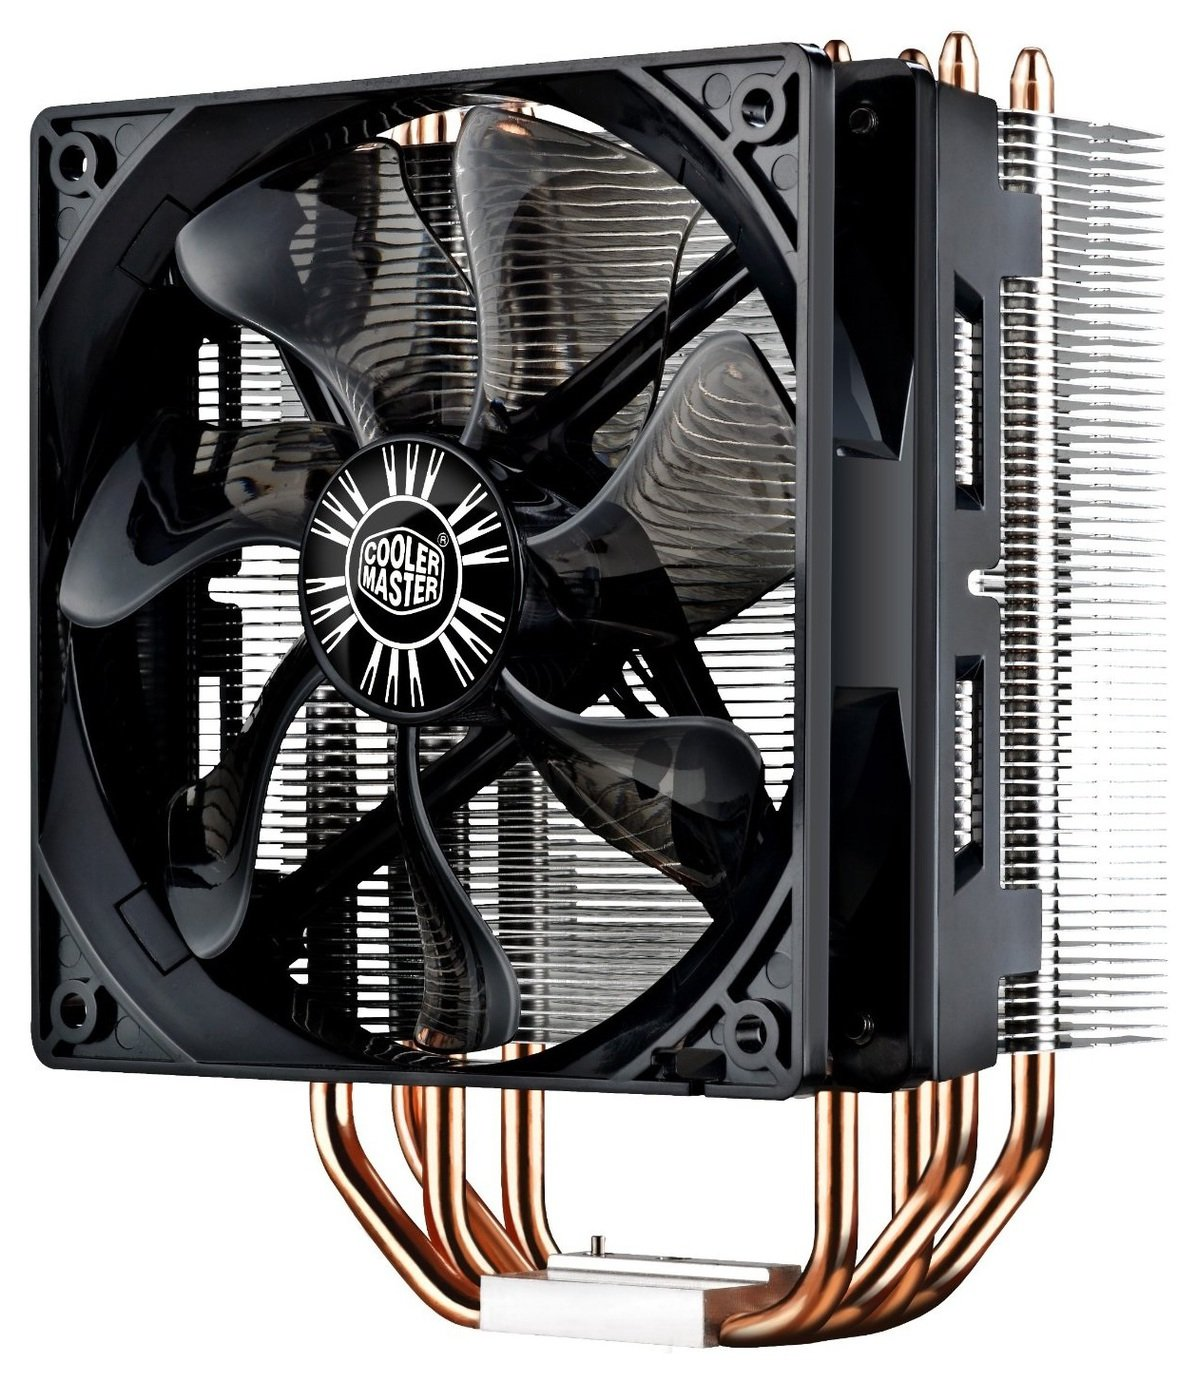 Image of Cooler Master Hyper 212 Evo 4 CPU Cooler.